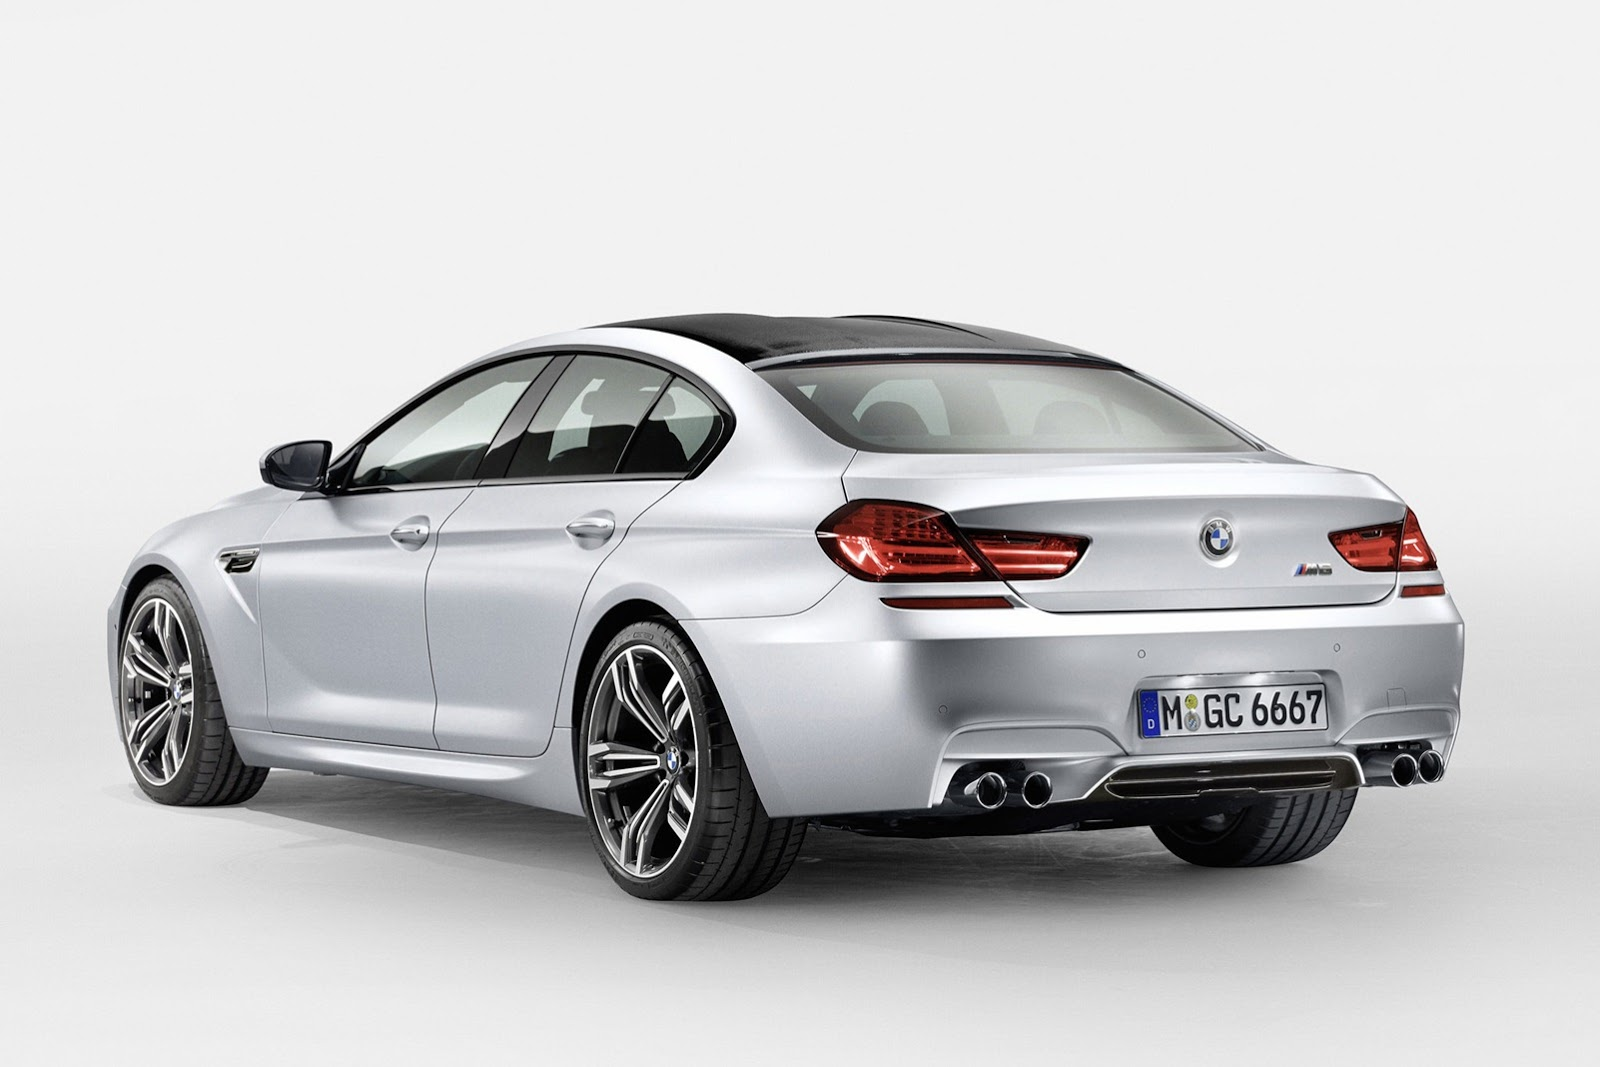 official bmw m6 gran coupe images leak onto the web autoevolution. Black Bedroom Furniture Sets. Home Design Ideas